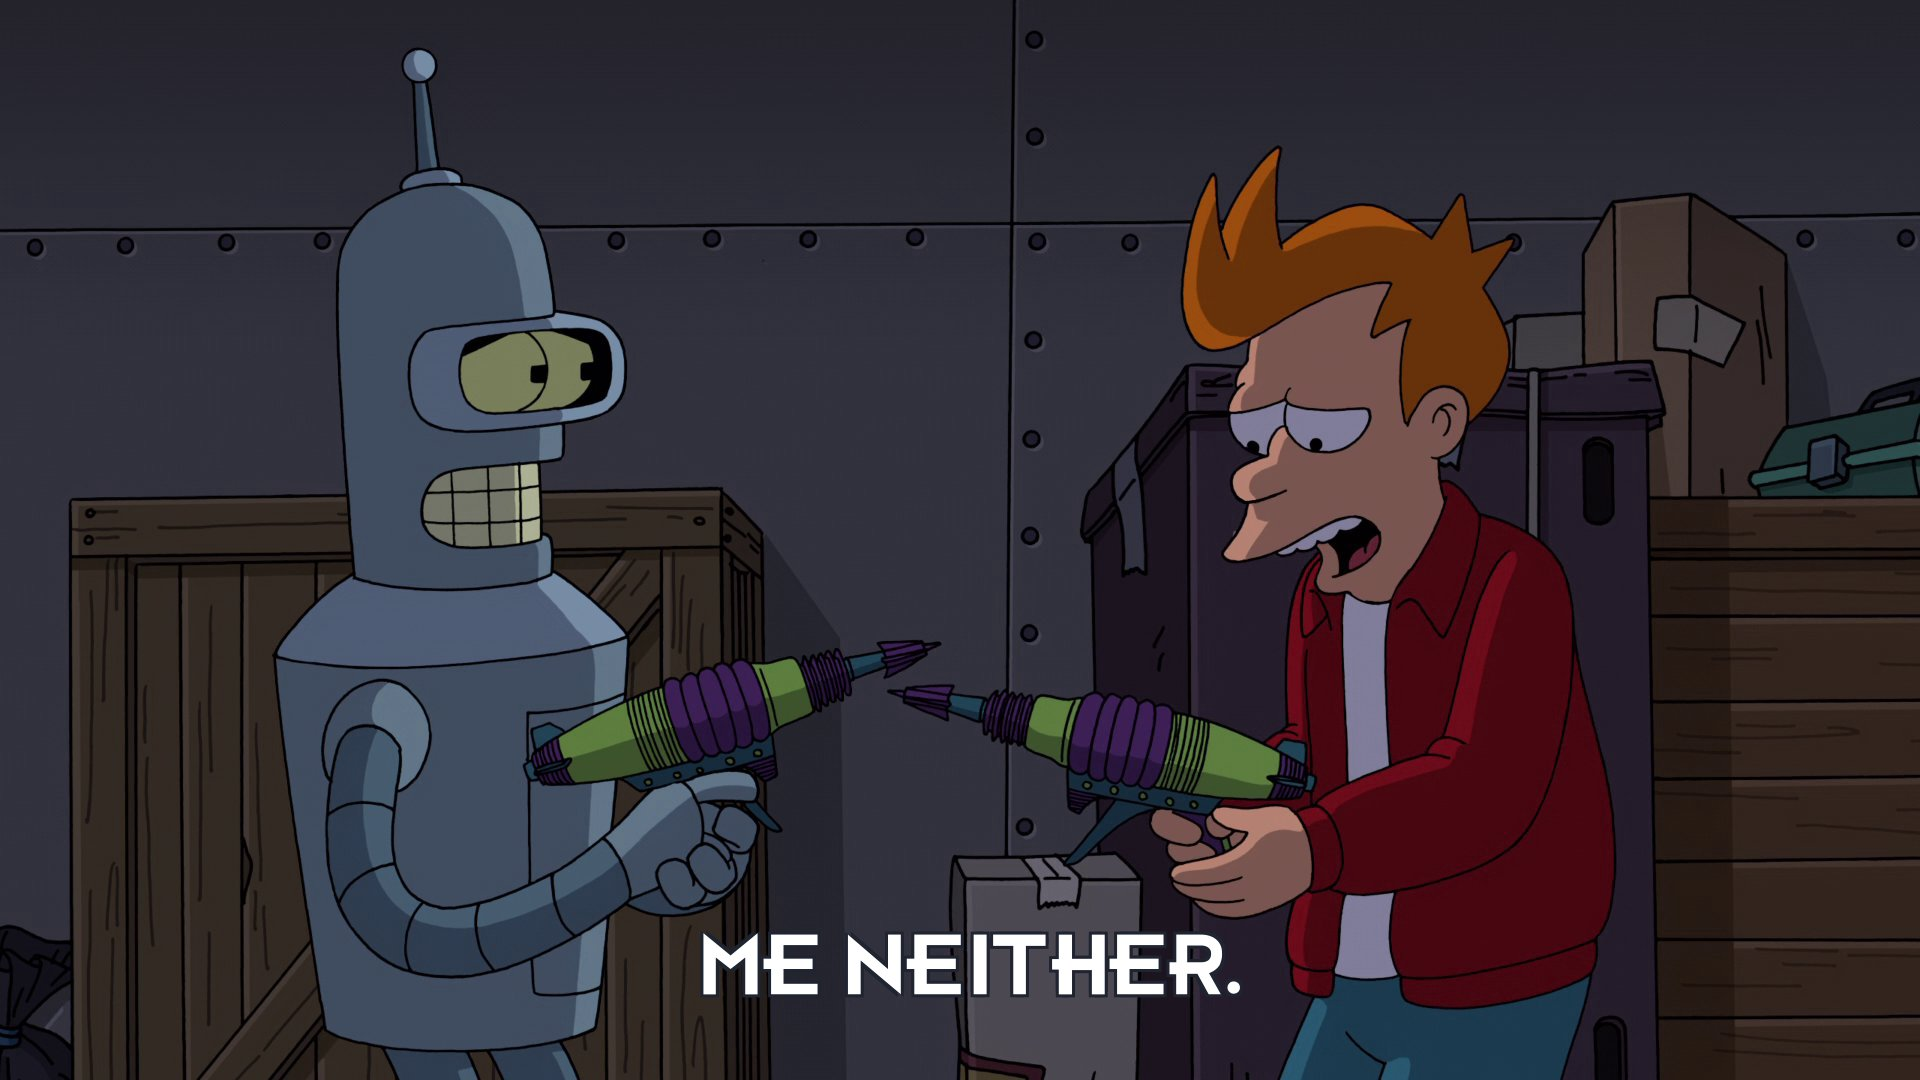 Philip J Fry: Me neither.